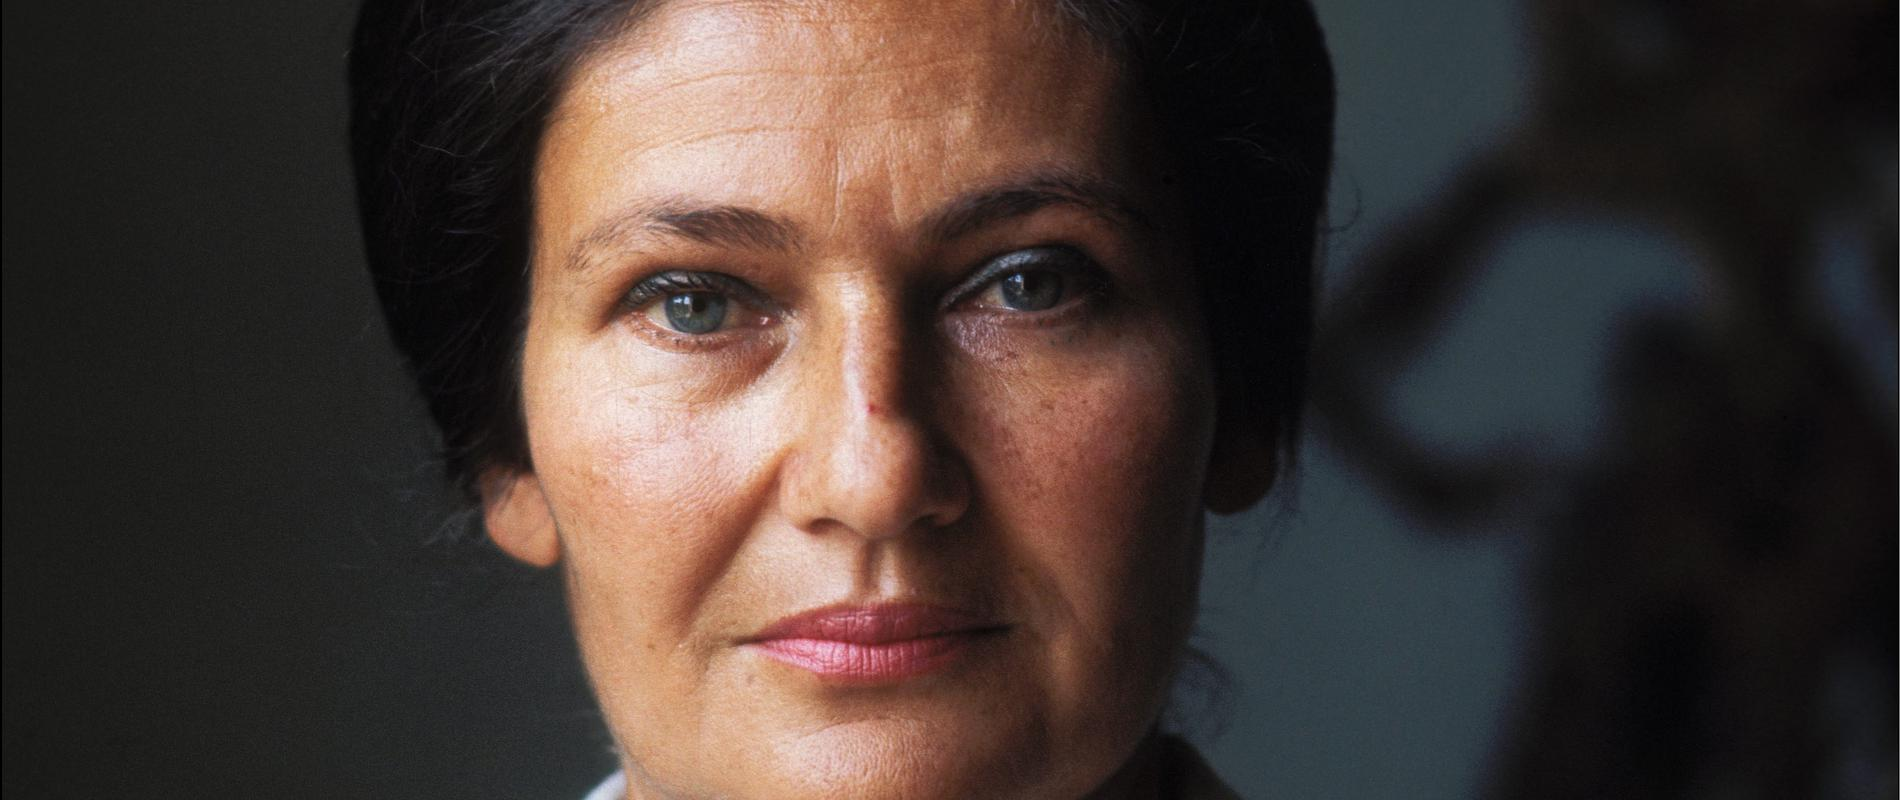 simone veil dead at 89 years juliet in paris. Black Bedroom Furniture Sets. Home Design Ideas